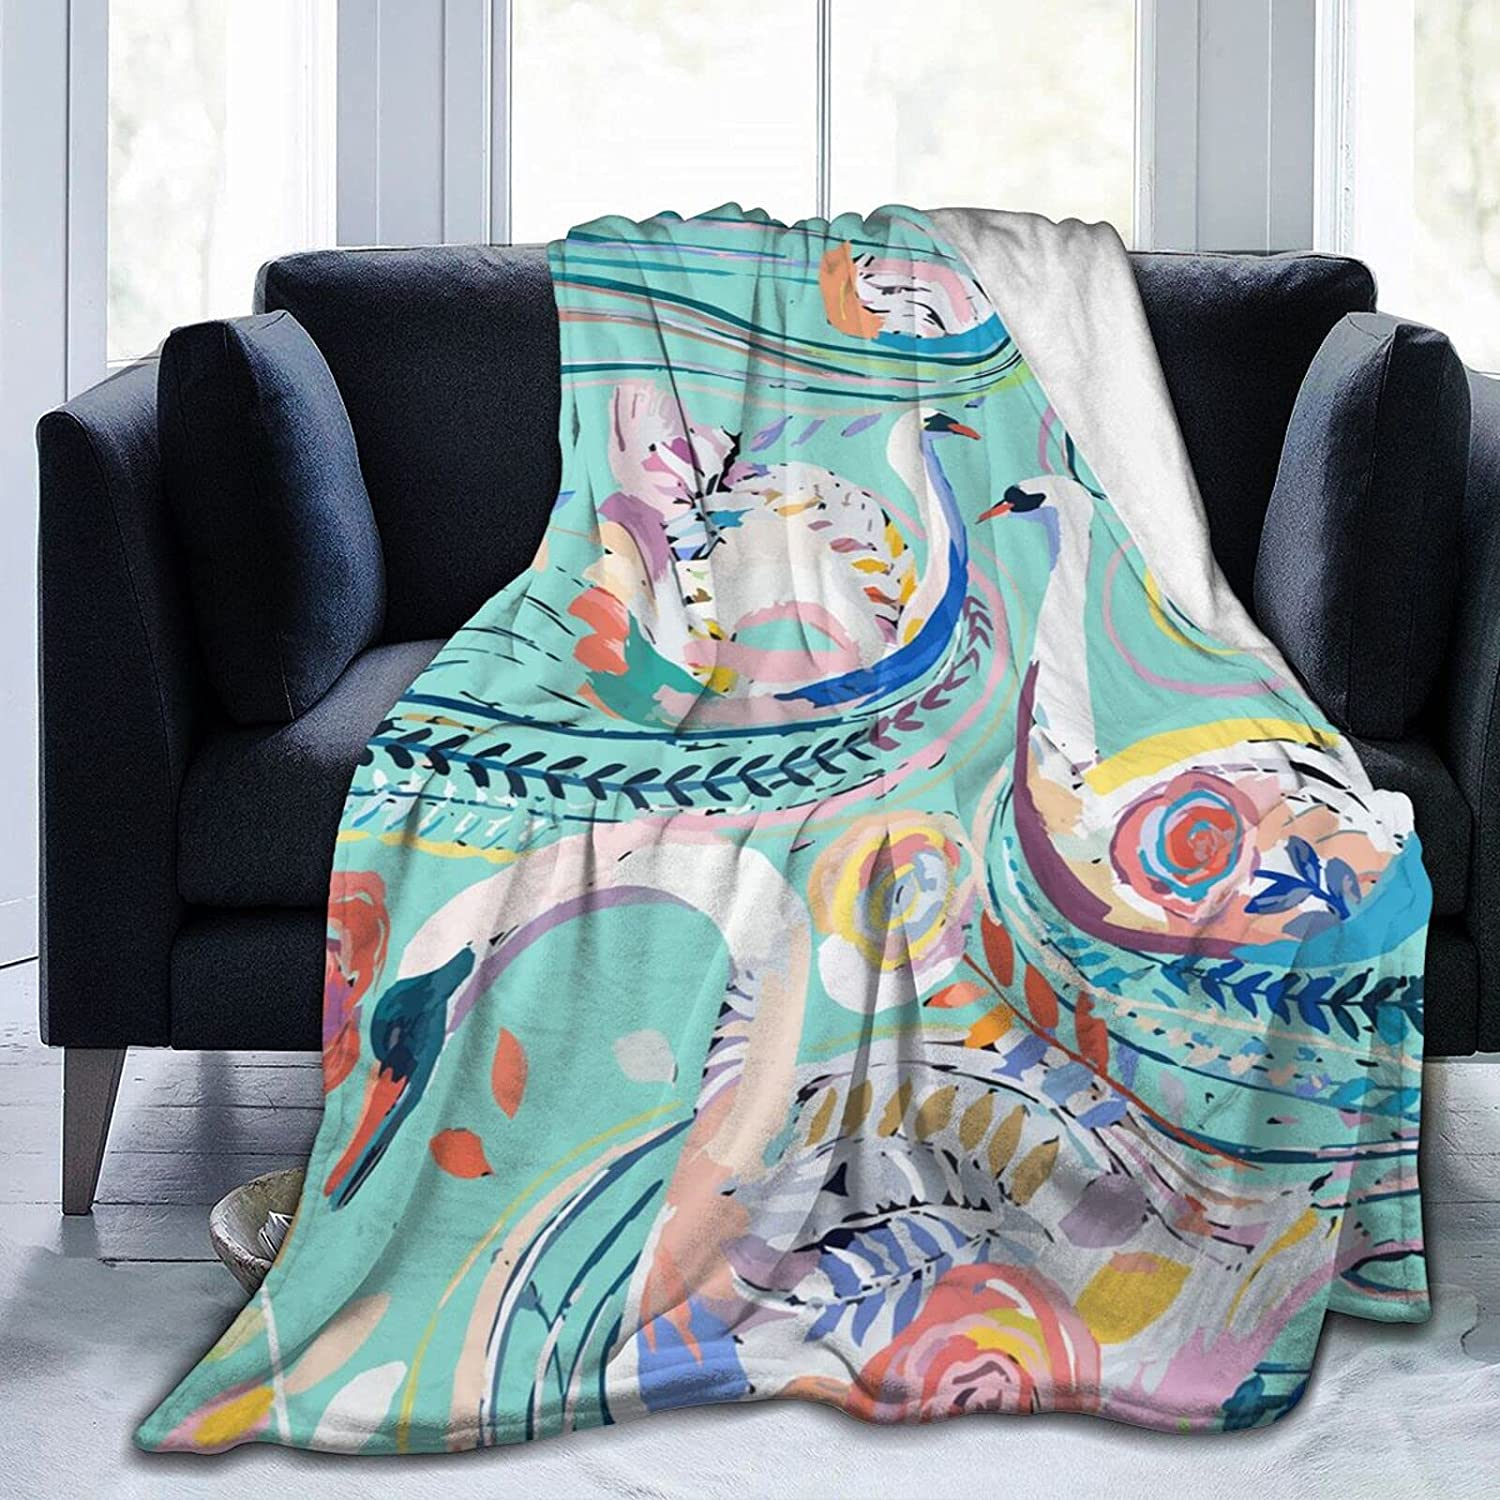 Super sale period limited Swans Sherpa 2021 autumn and winter new Blanket Soft 80